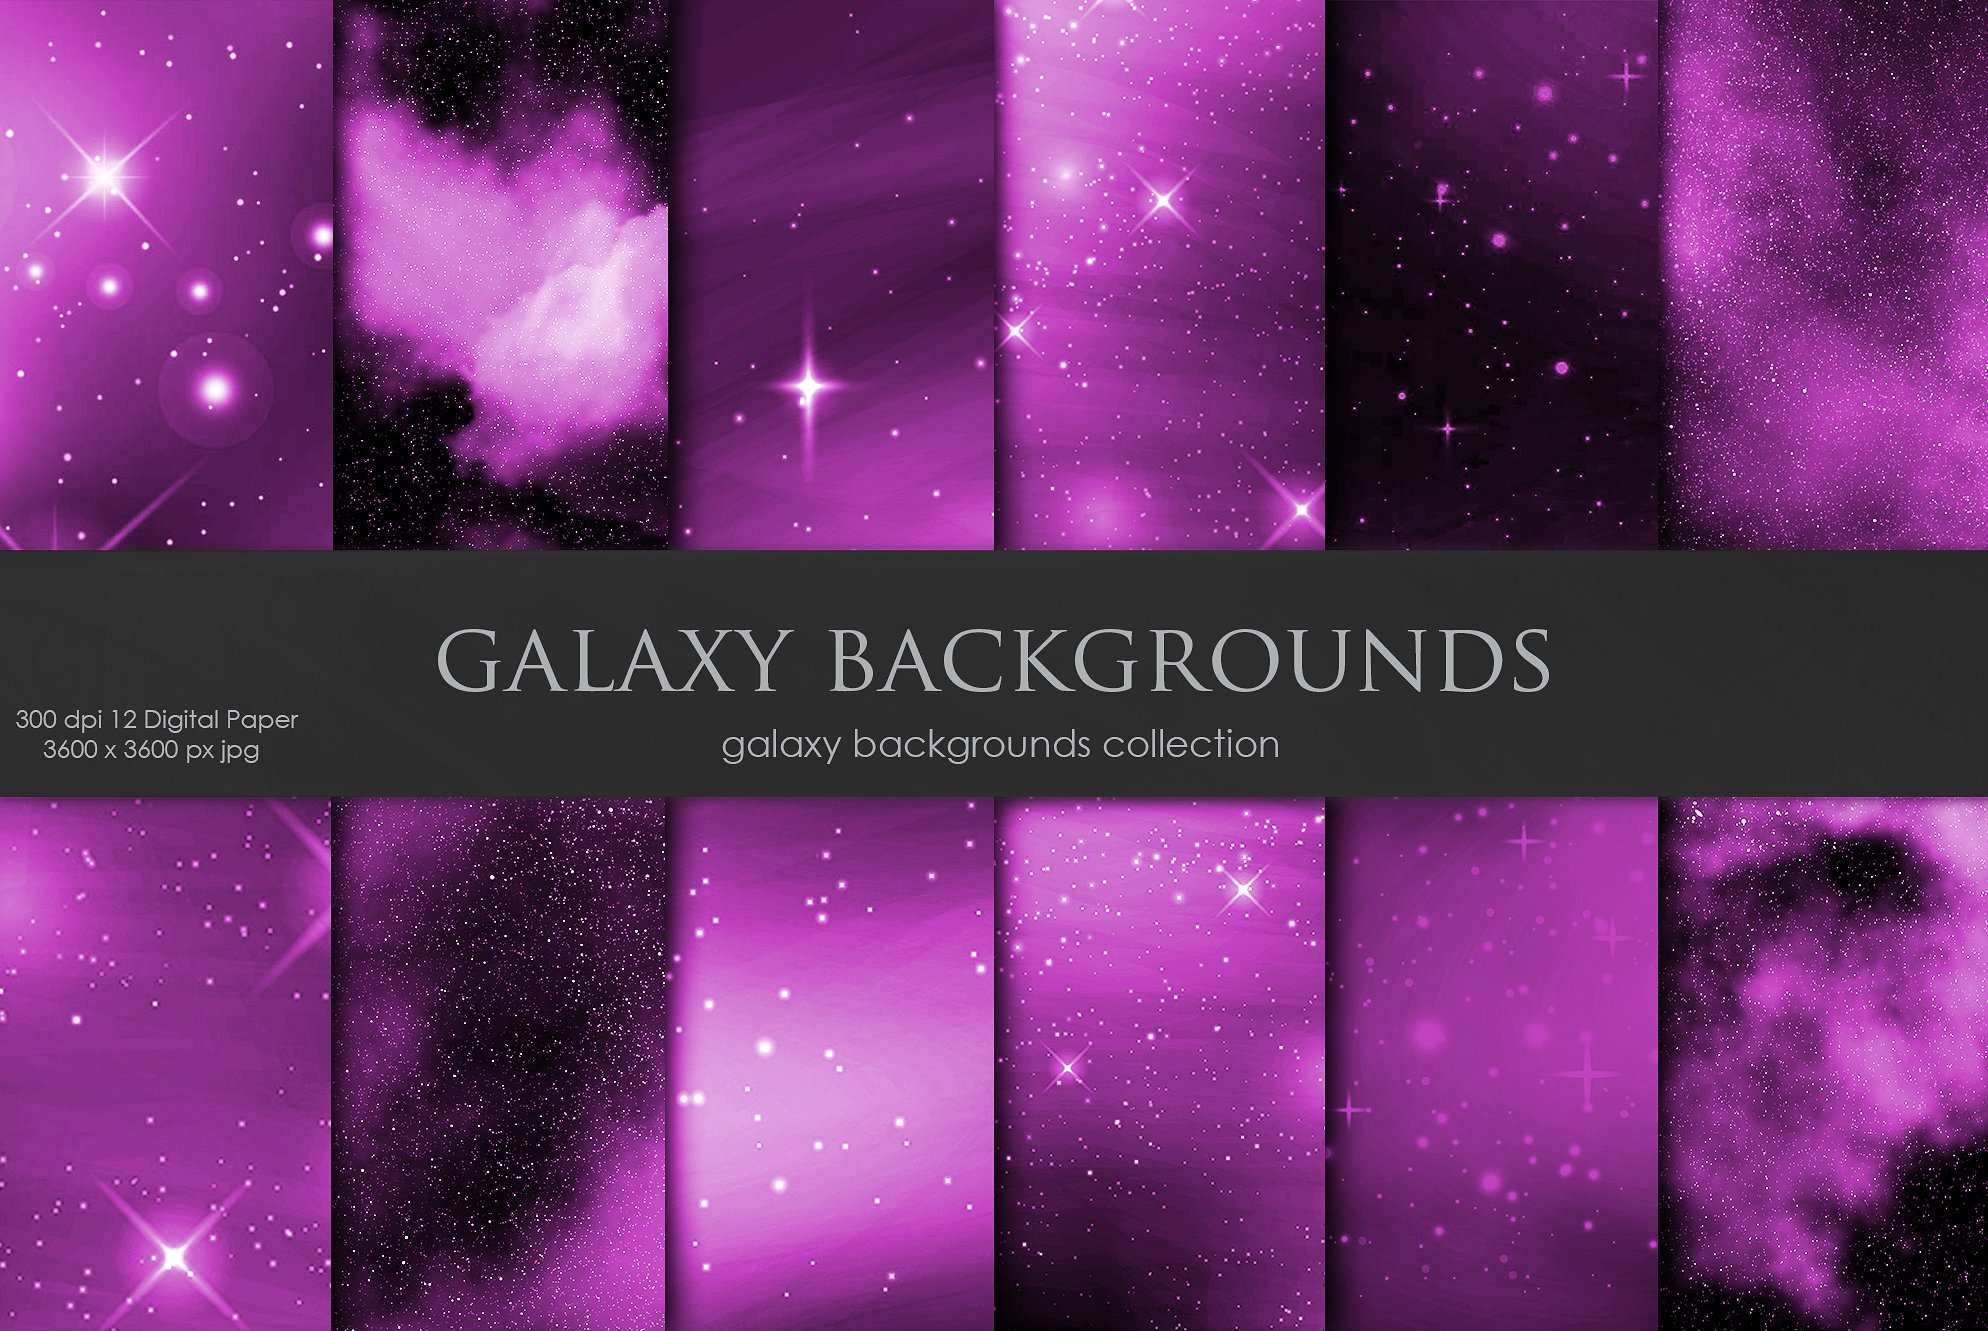 500+ Galaxy Background Vectors, Photos and PSD files 2020: Does It Work for Web Design? - galaxy backgrounds